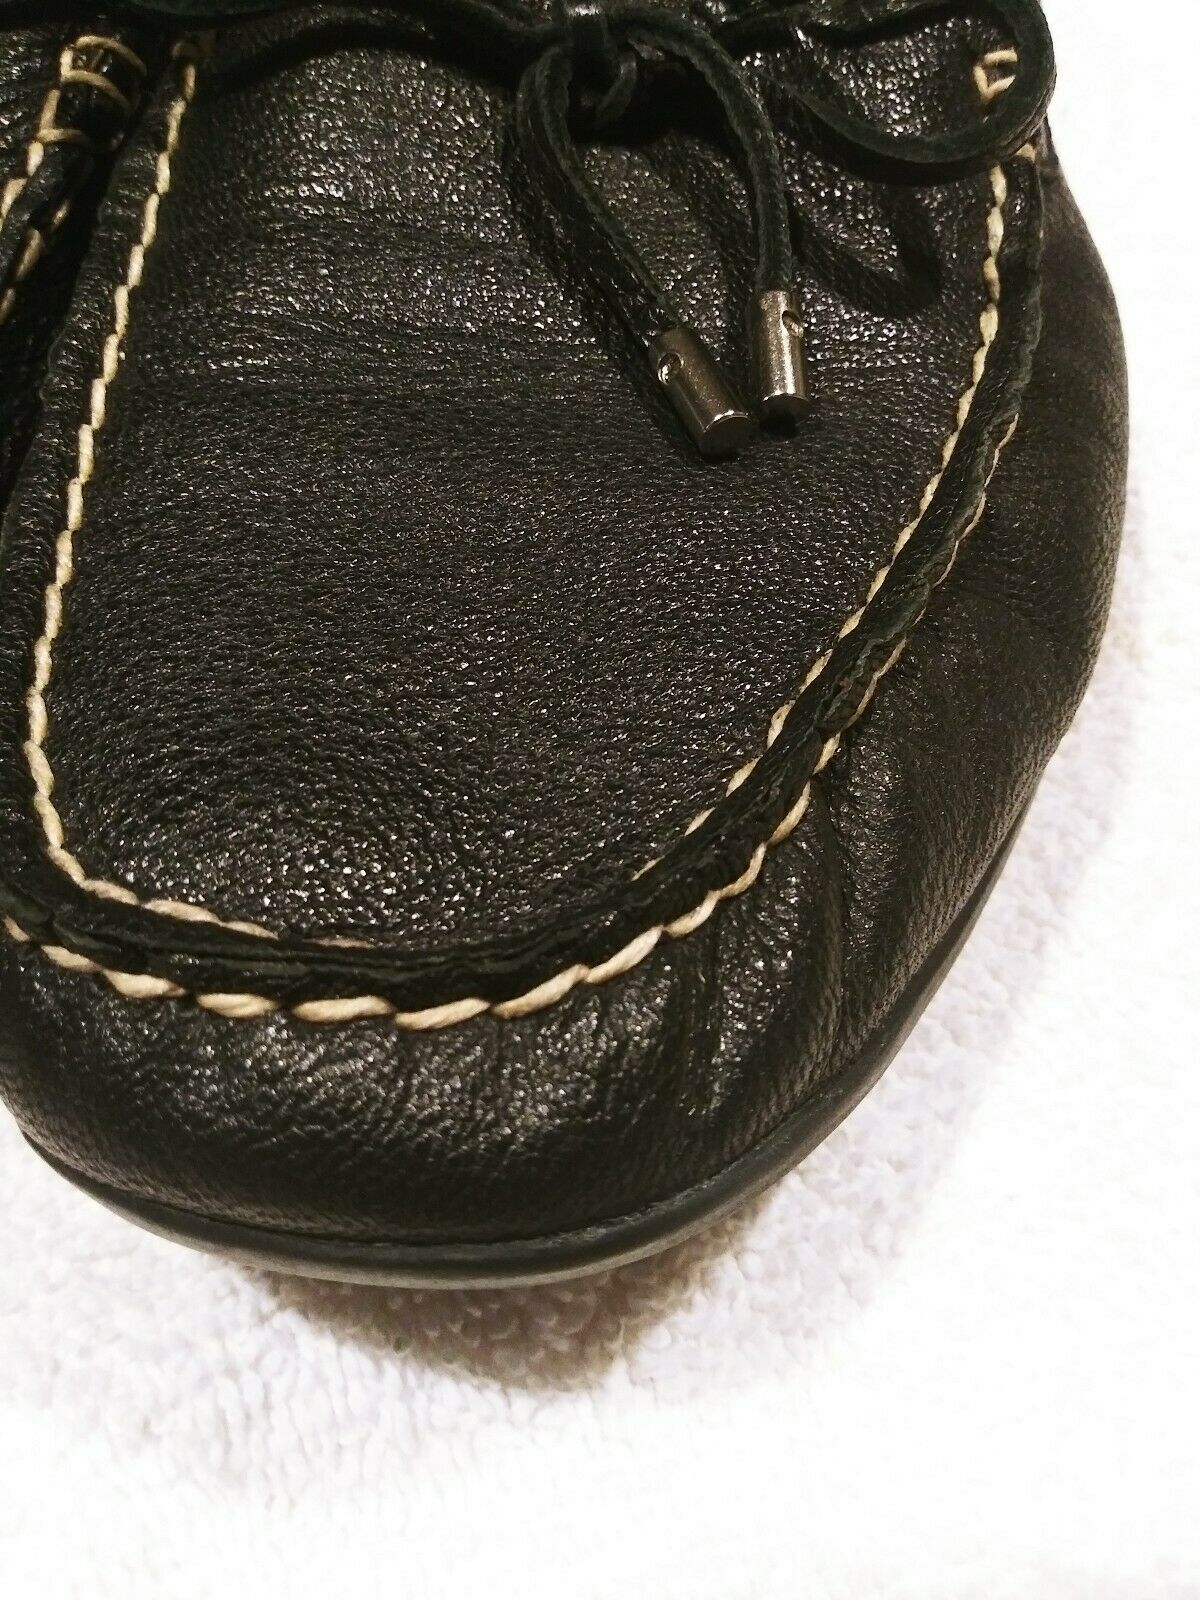 Womens Sperry Top-siders Black Leather With Tassels. Size 9